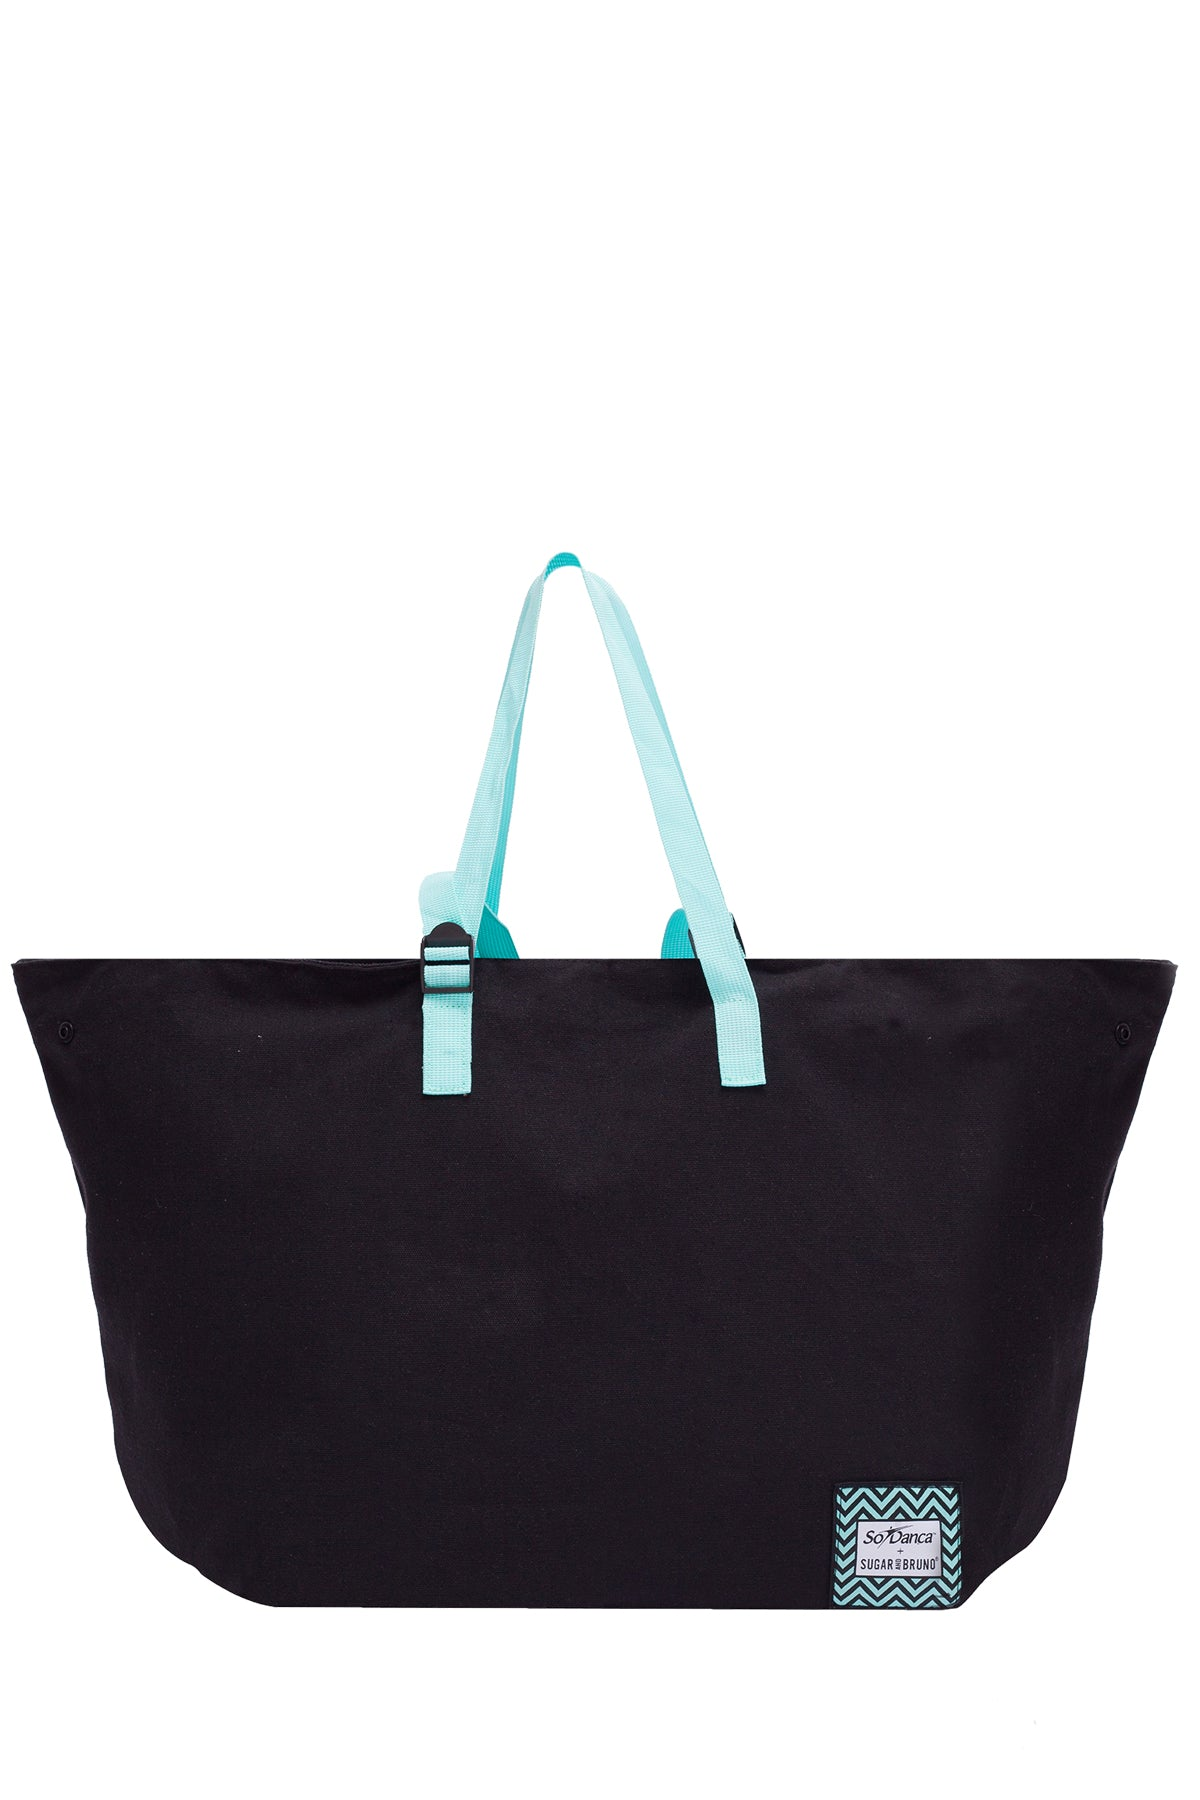 So Danca Pull It Together Bag - SBSD1